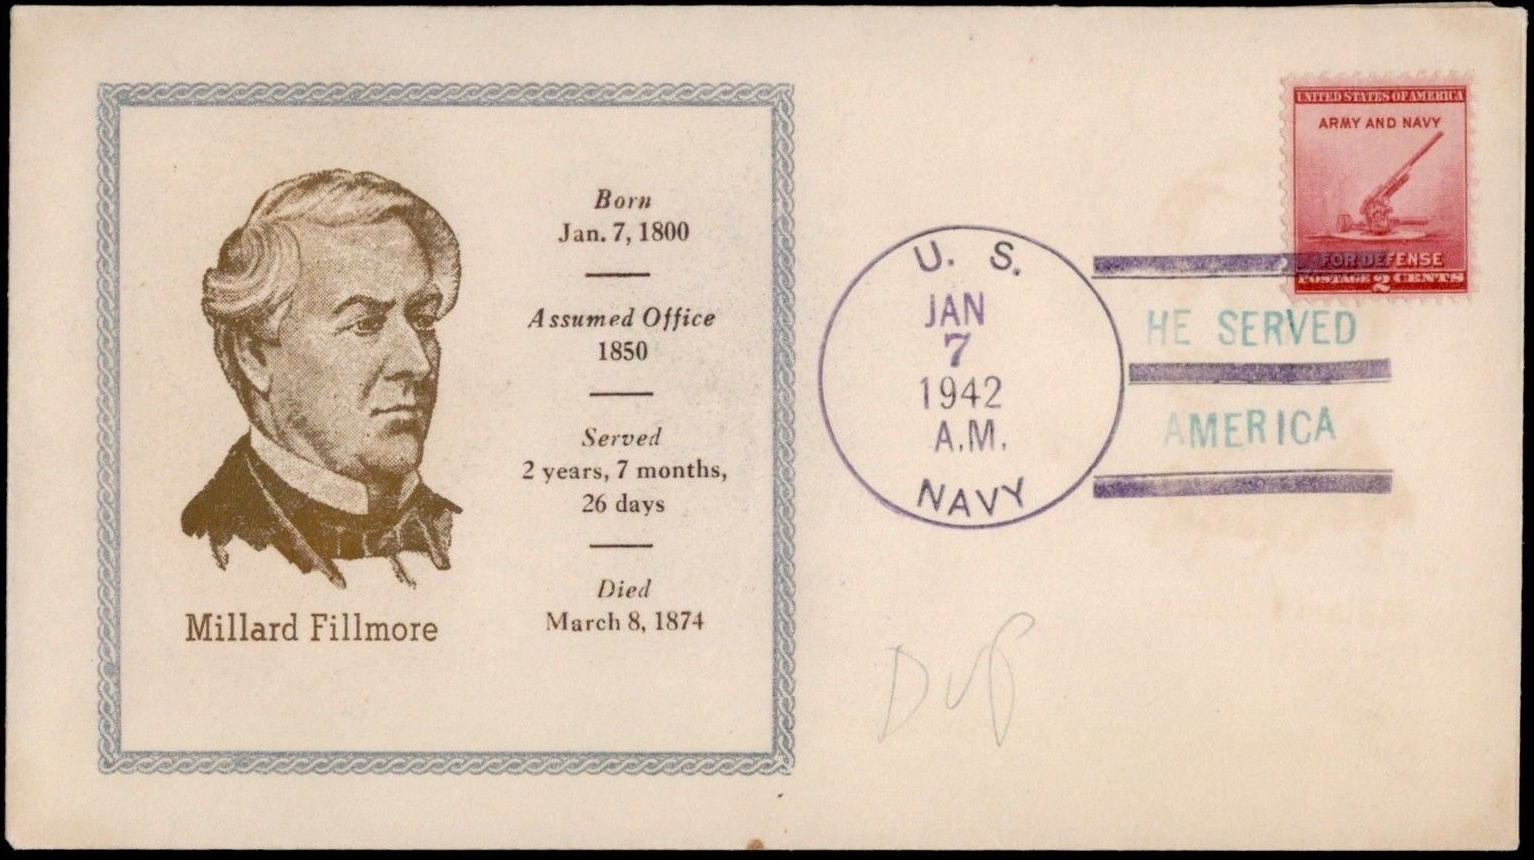 U.S. Navy cover postmarked January 7, 1942, marking Millard Fillmore's 142nd birthday anniversary.